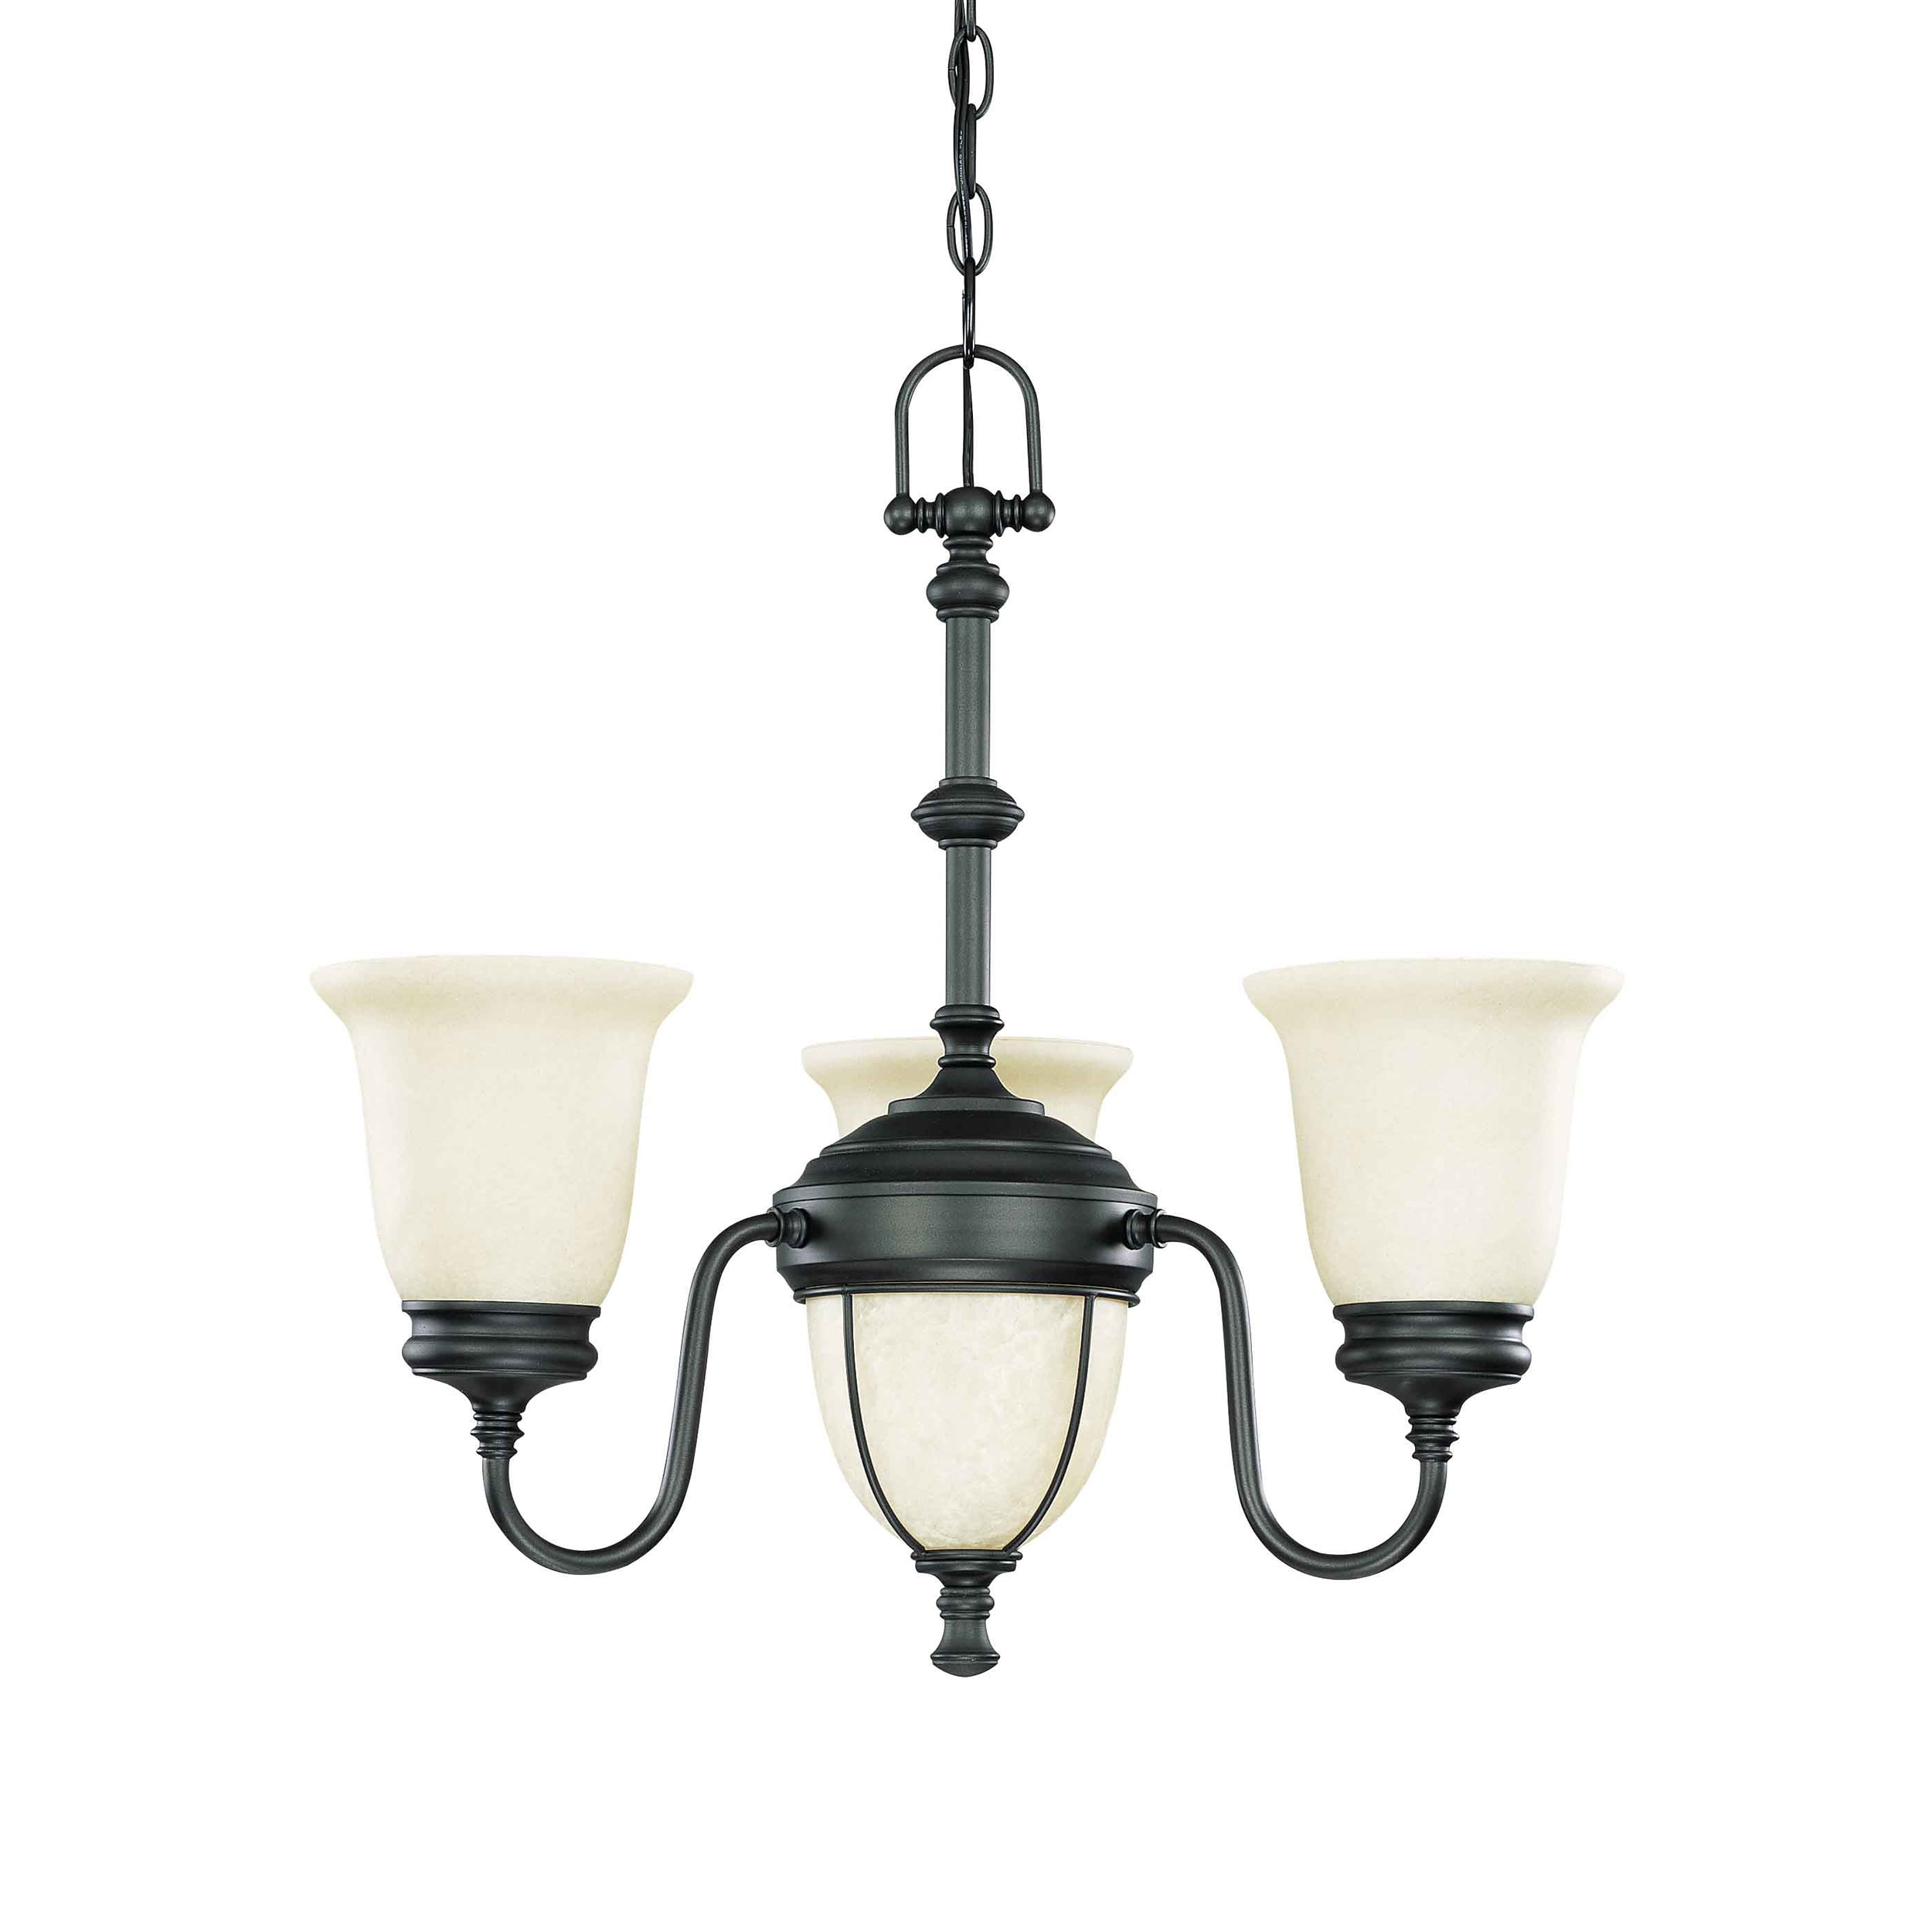 Salem 3 Light Chandelier Aged Bronze with Biscotti Glass - Thumbnail 0